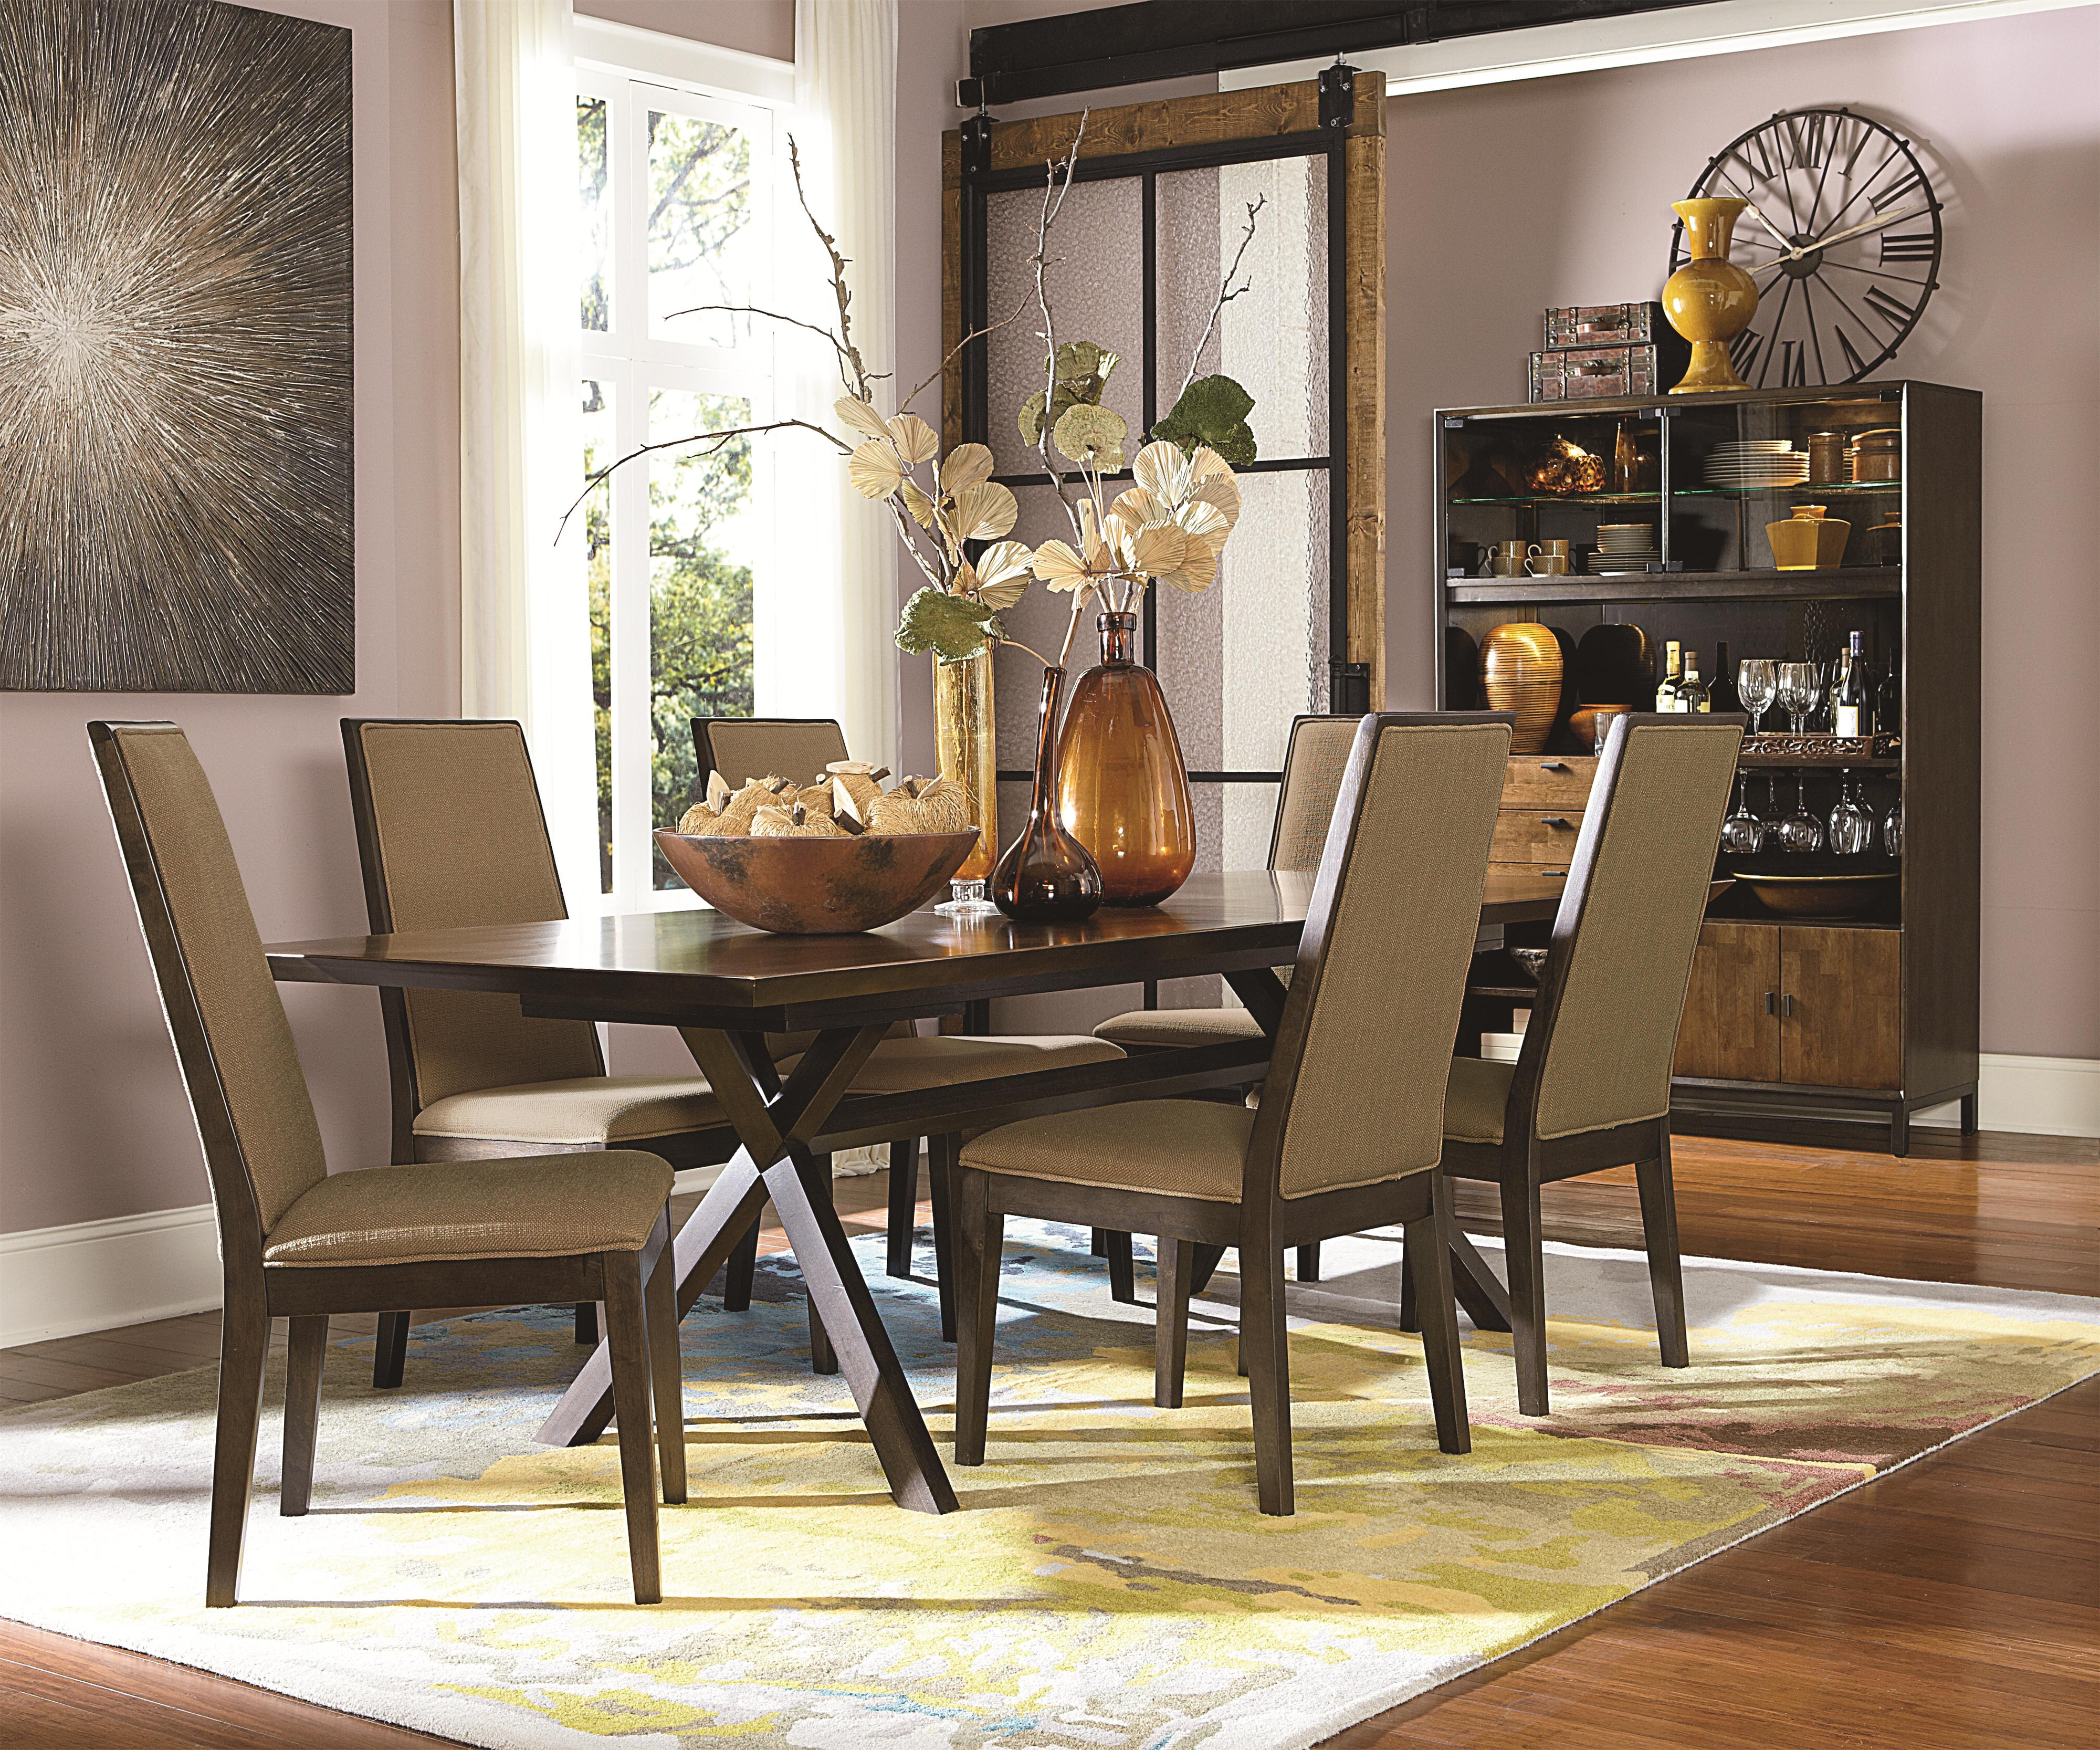 Legacy Classic Kateri Rectangular Table With Trestle Bottom In Hazelnut  Finish With Extension Leaf   Belfort Furniture   Dining Room Table